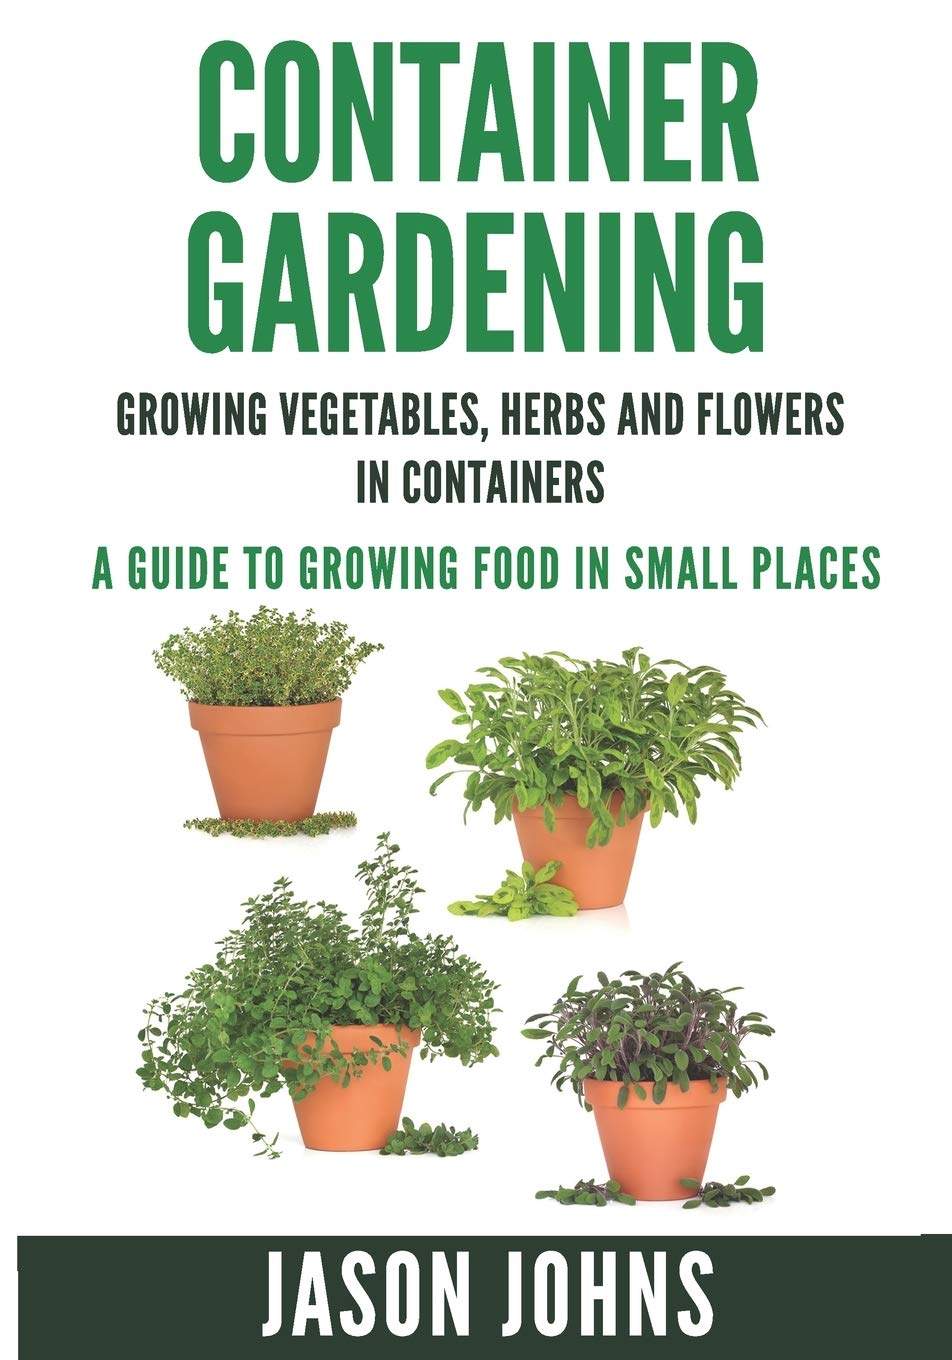 Container Gardening Growing Vegetables Herbs And Flowers In Containers A Guide To Growing Food In Small Places Inspiring Gardening Ideas Johns Jason 9781517597214 Amazon Com Books